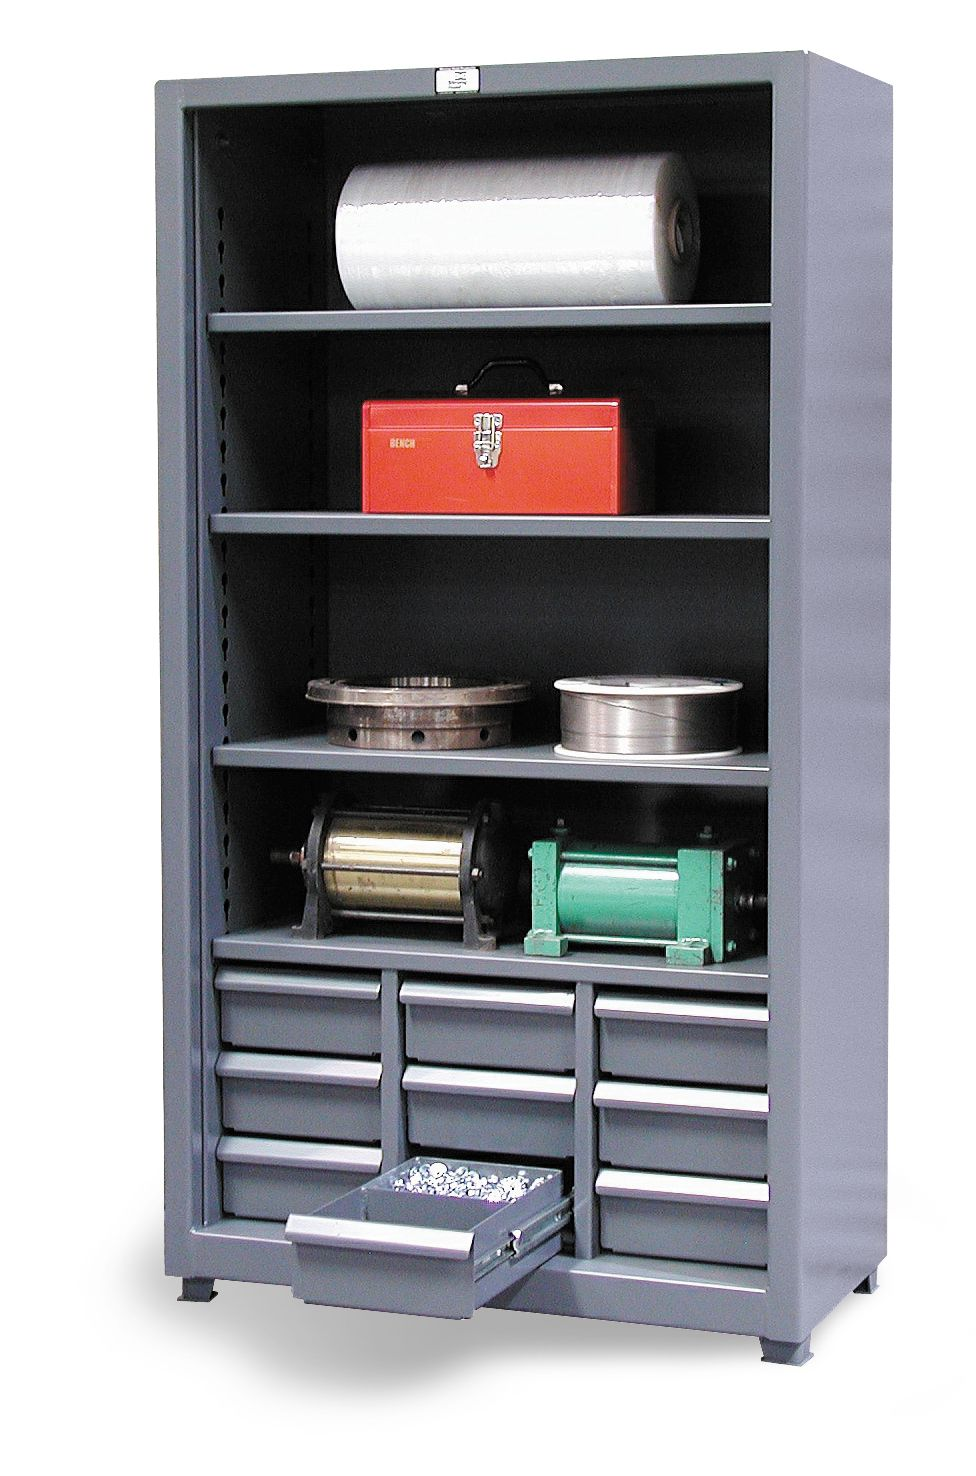 Combination Open Drawer Storage This Combination Shelving Unit And Drawer Cabinet It Has 4